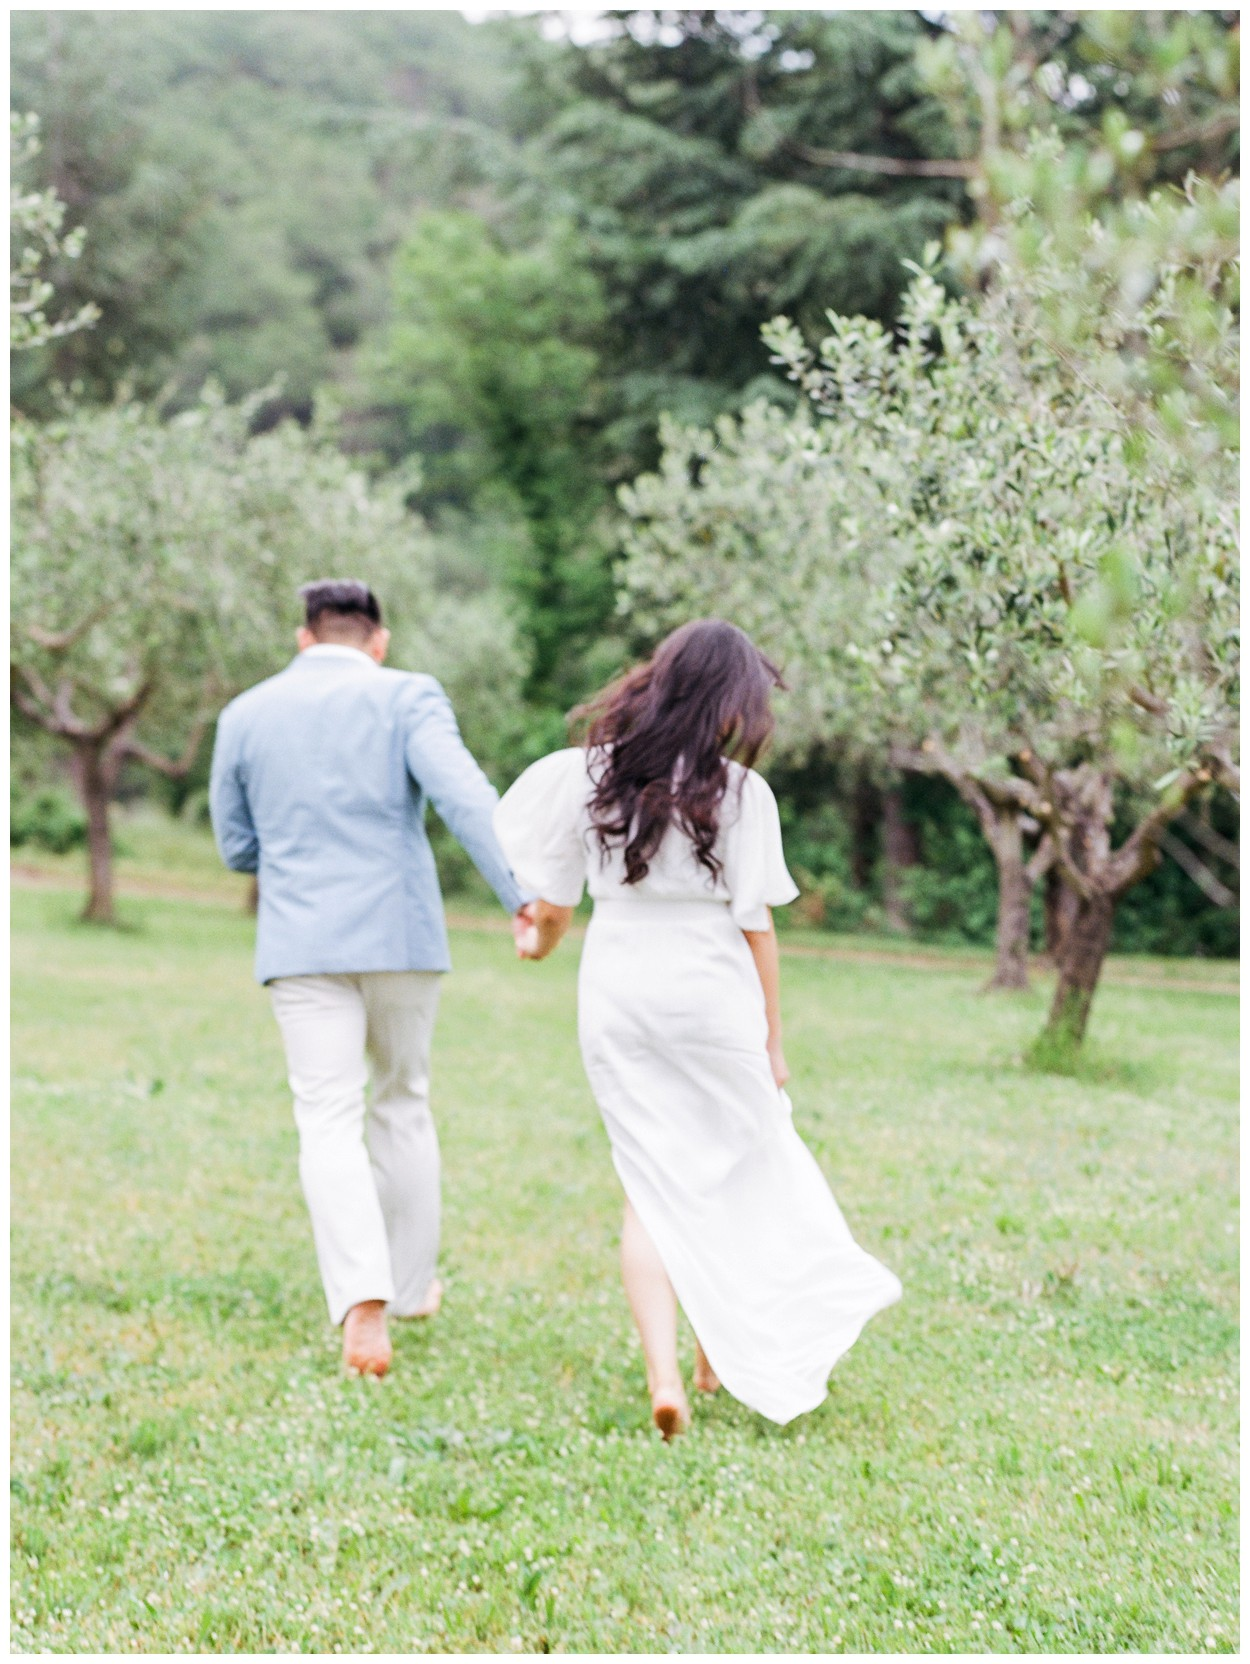 Spring Engagement at Villa Montanare in Cortona Tuscany, Italy by fine art wedding photographer Lissa Ryan Photography couple running in an olive grove